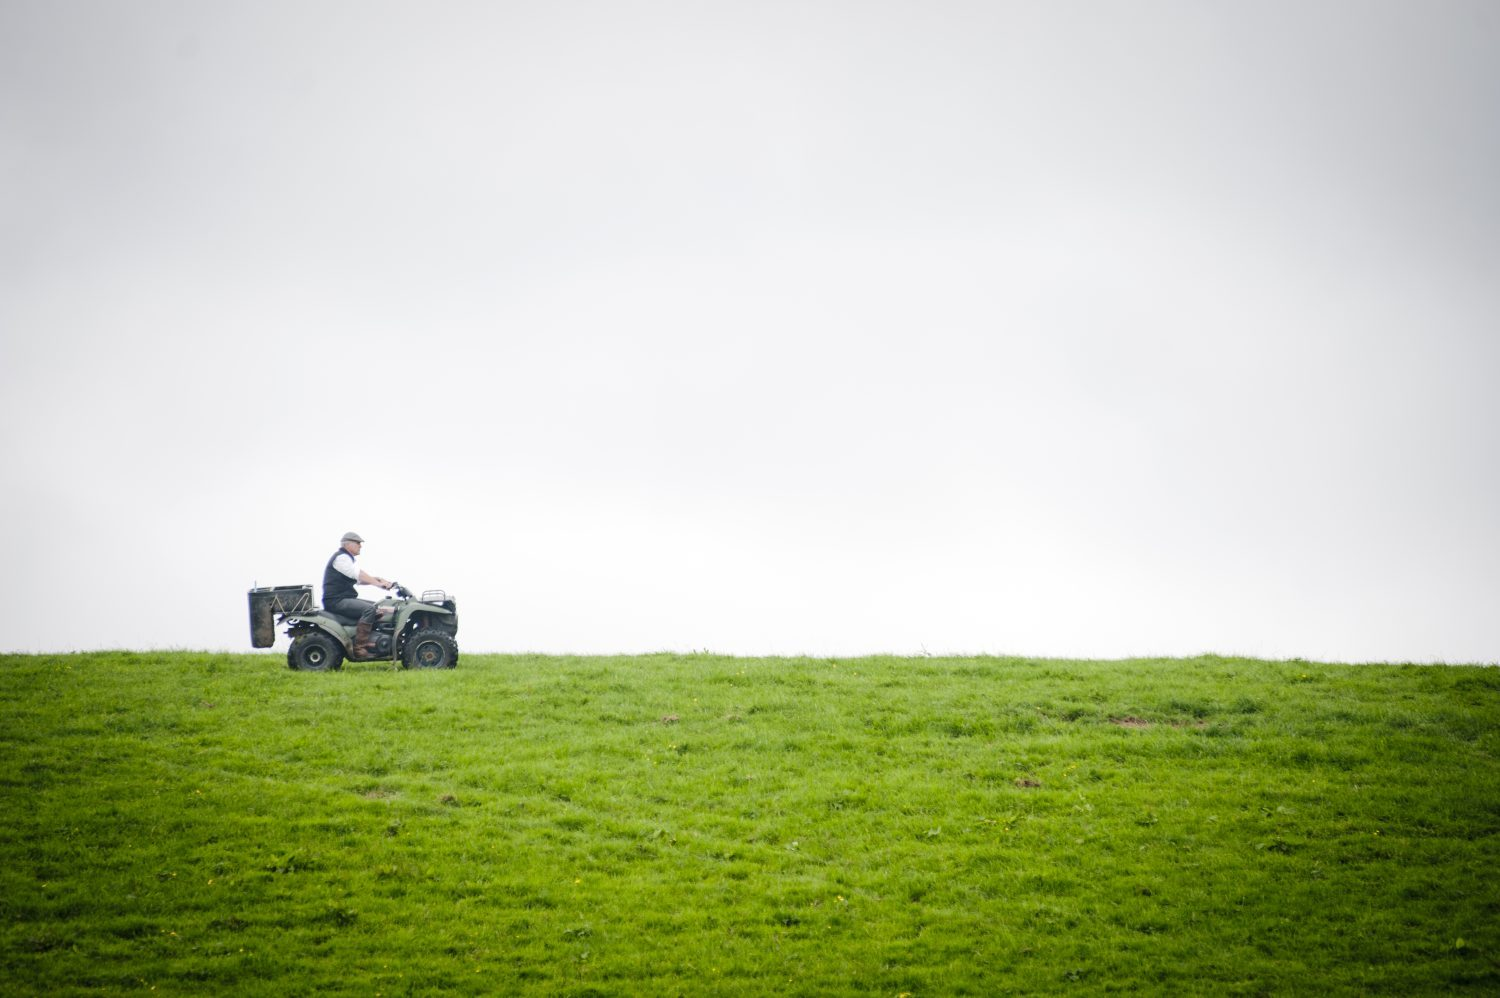 dairy farmer inspecting his grass fields on a quad bike.